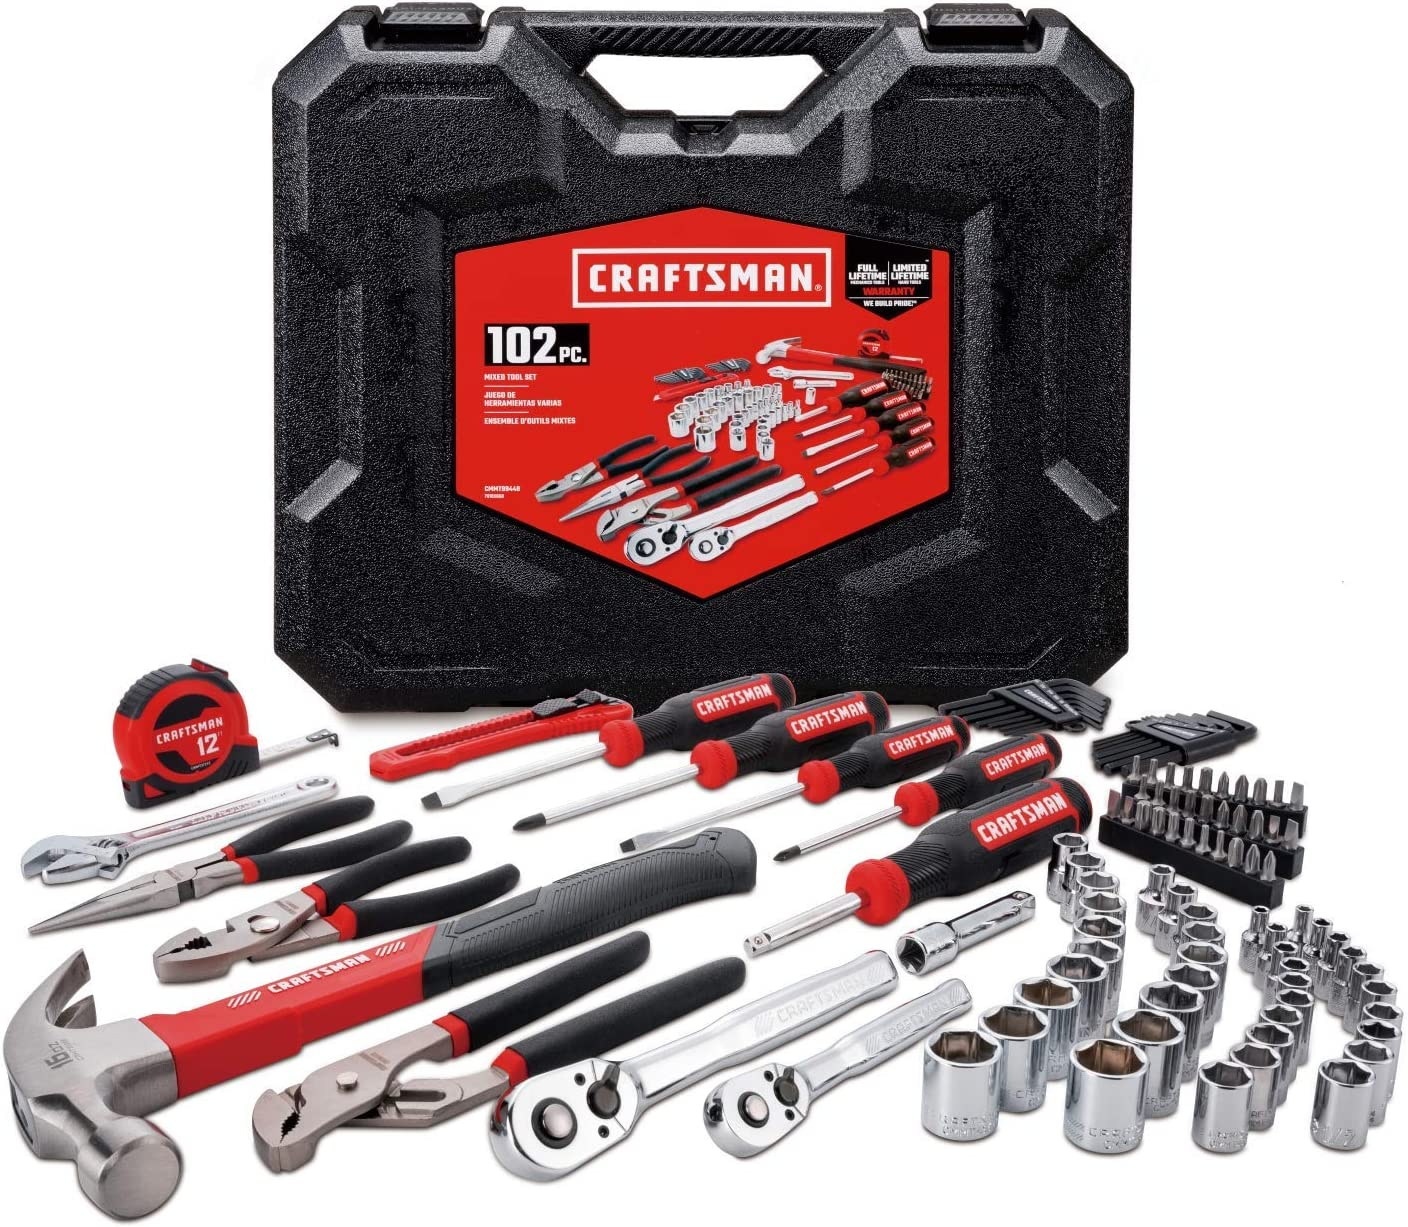 CRAFTSMAN Home Tool Kit / Mechanics Tools Kit, 102-Piece (CMMT99448)